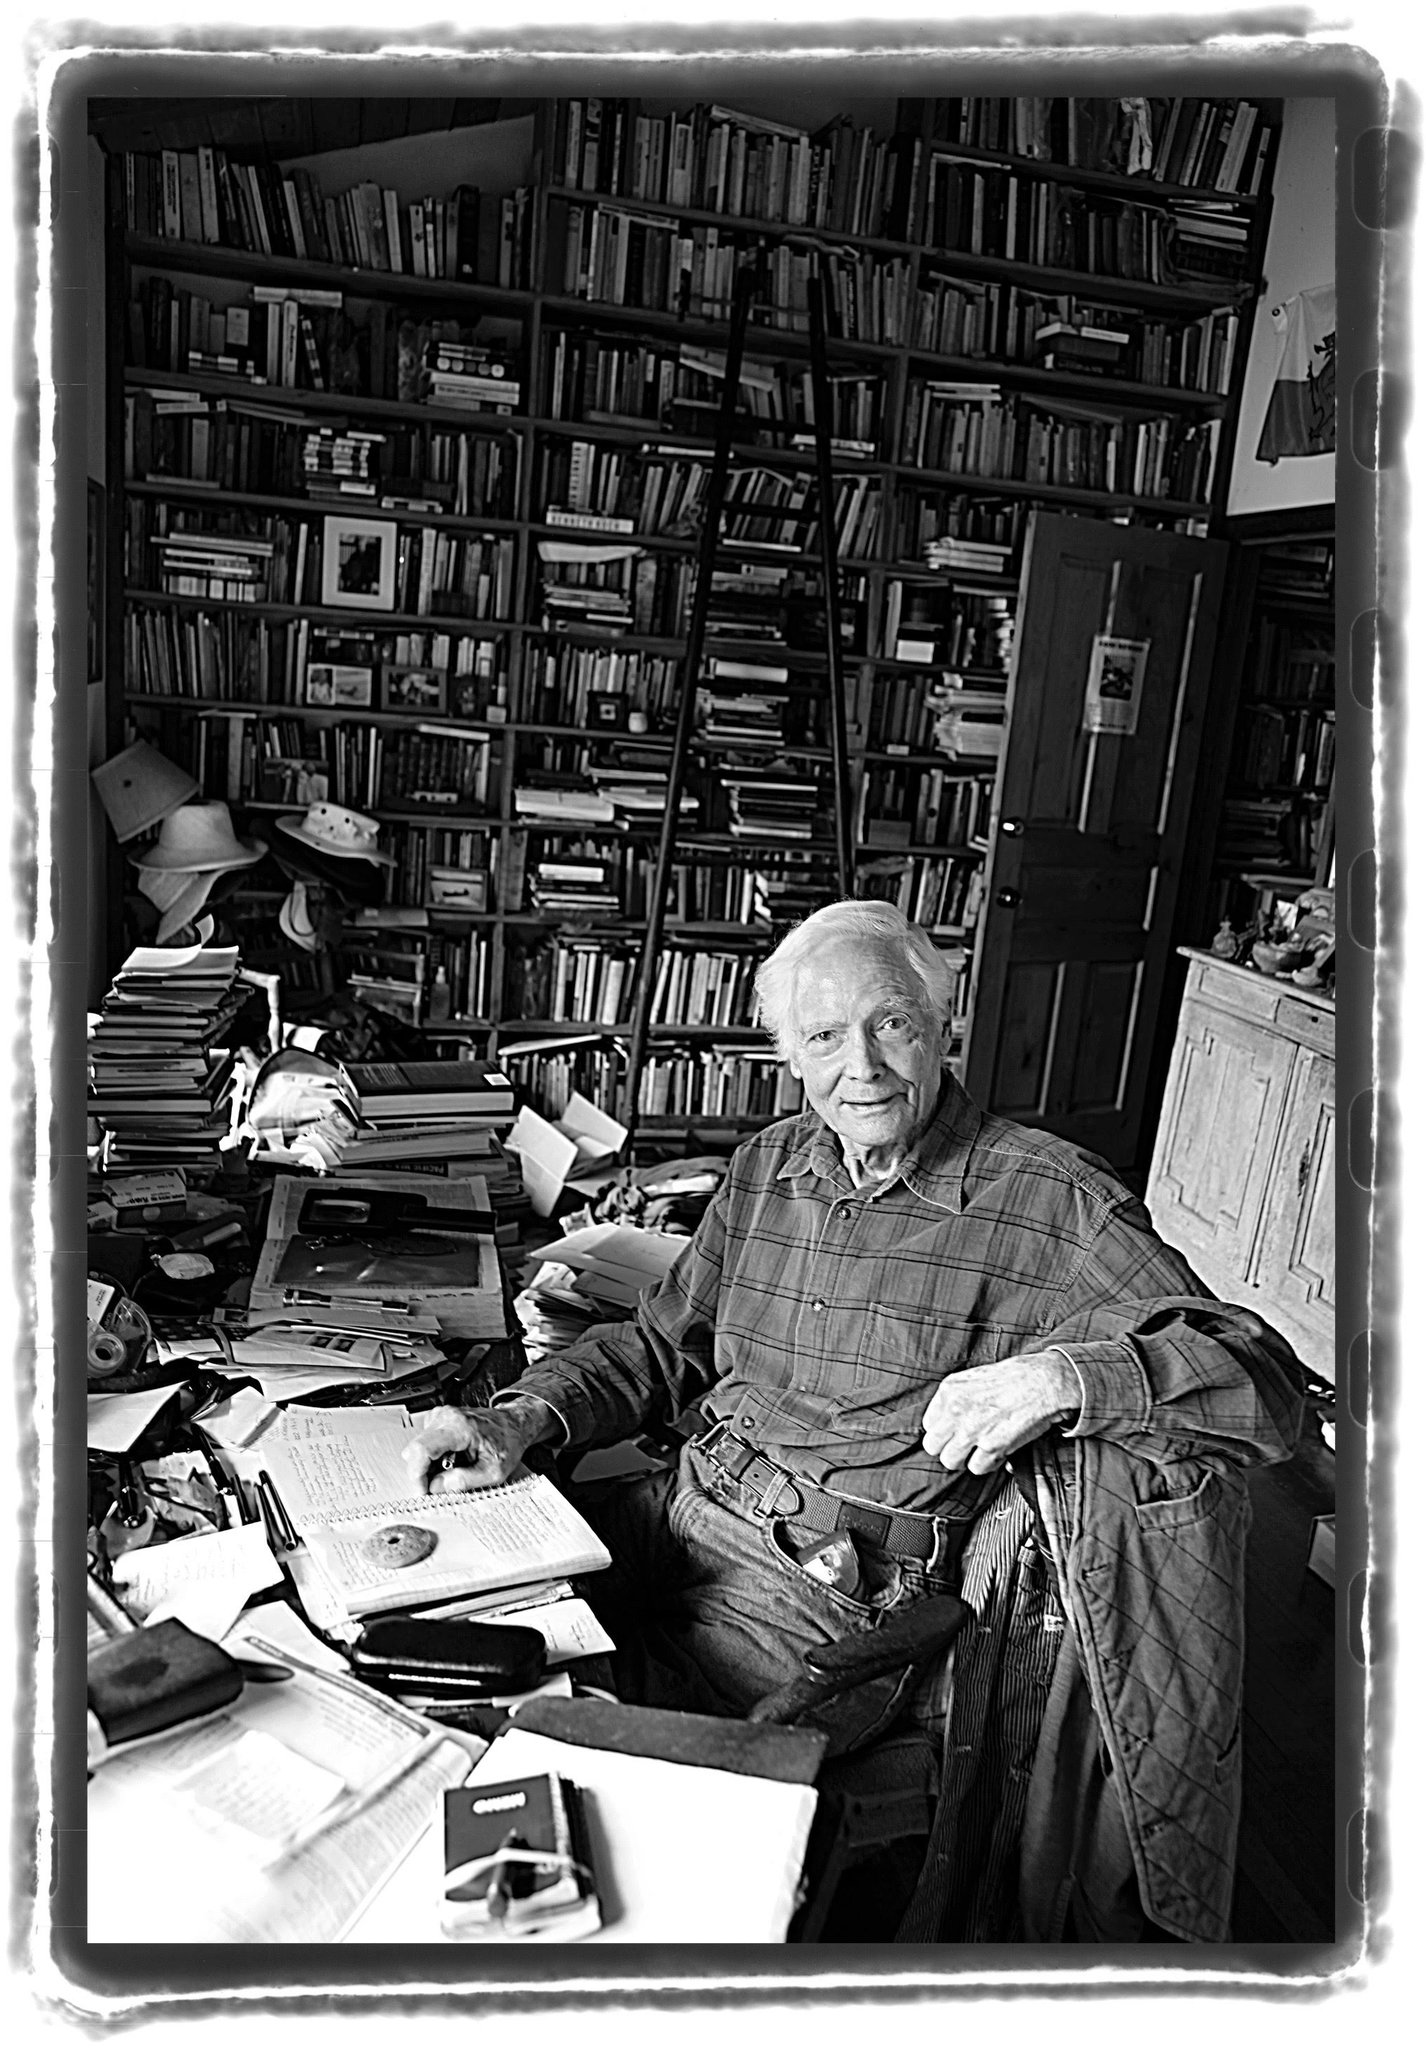 photo by Tom Sewell for the New York Times  WS Merwin in a 2009 photograph in his study at his home in Maui, that he only wanted published after his death- Tom Sewell